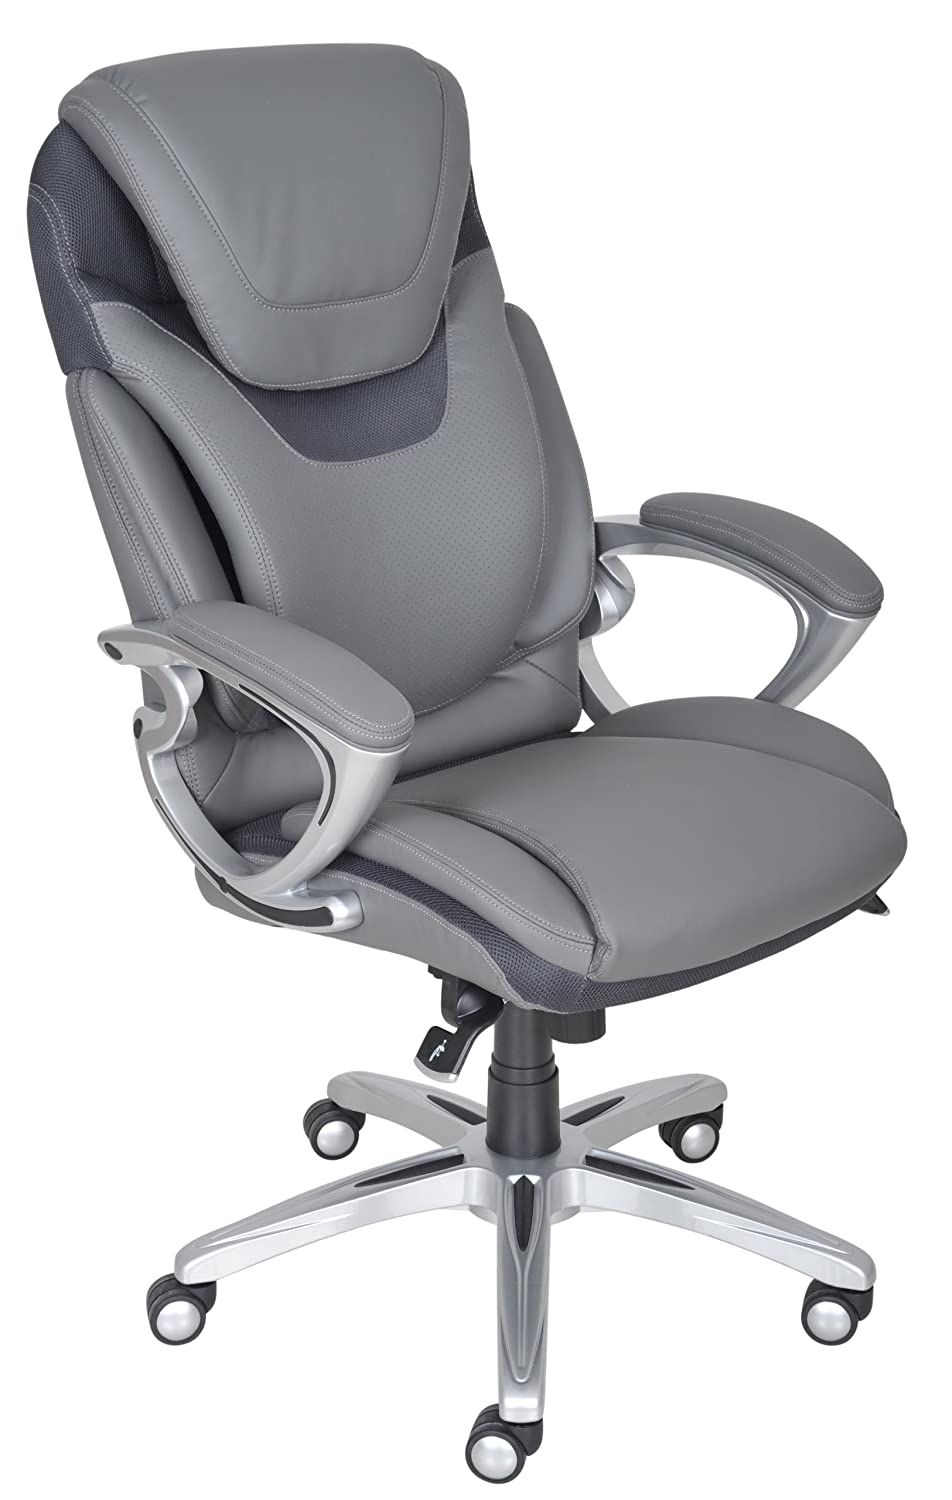 furniture commercial tall big of staples review camouflage memory full hensley serta size foam white blog model customer manager govt supplies with for service desk u top office executive chairs chair jennings workplace walmart